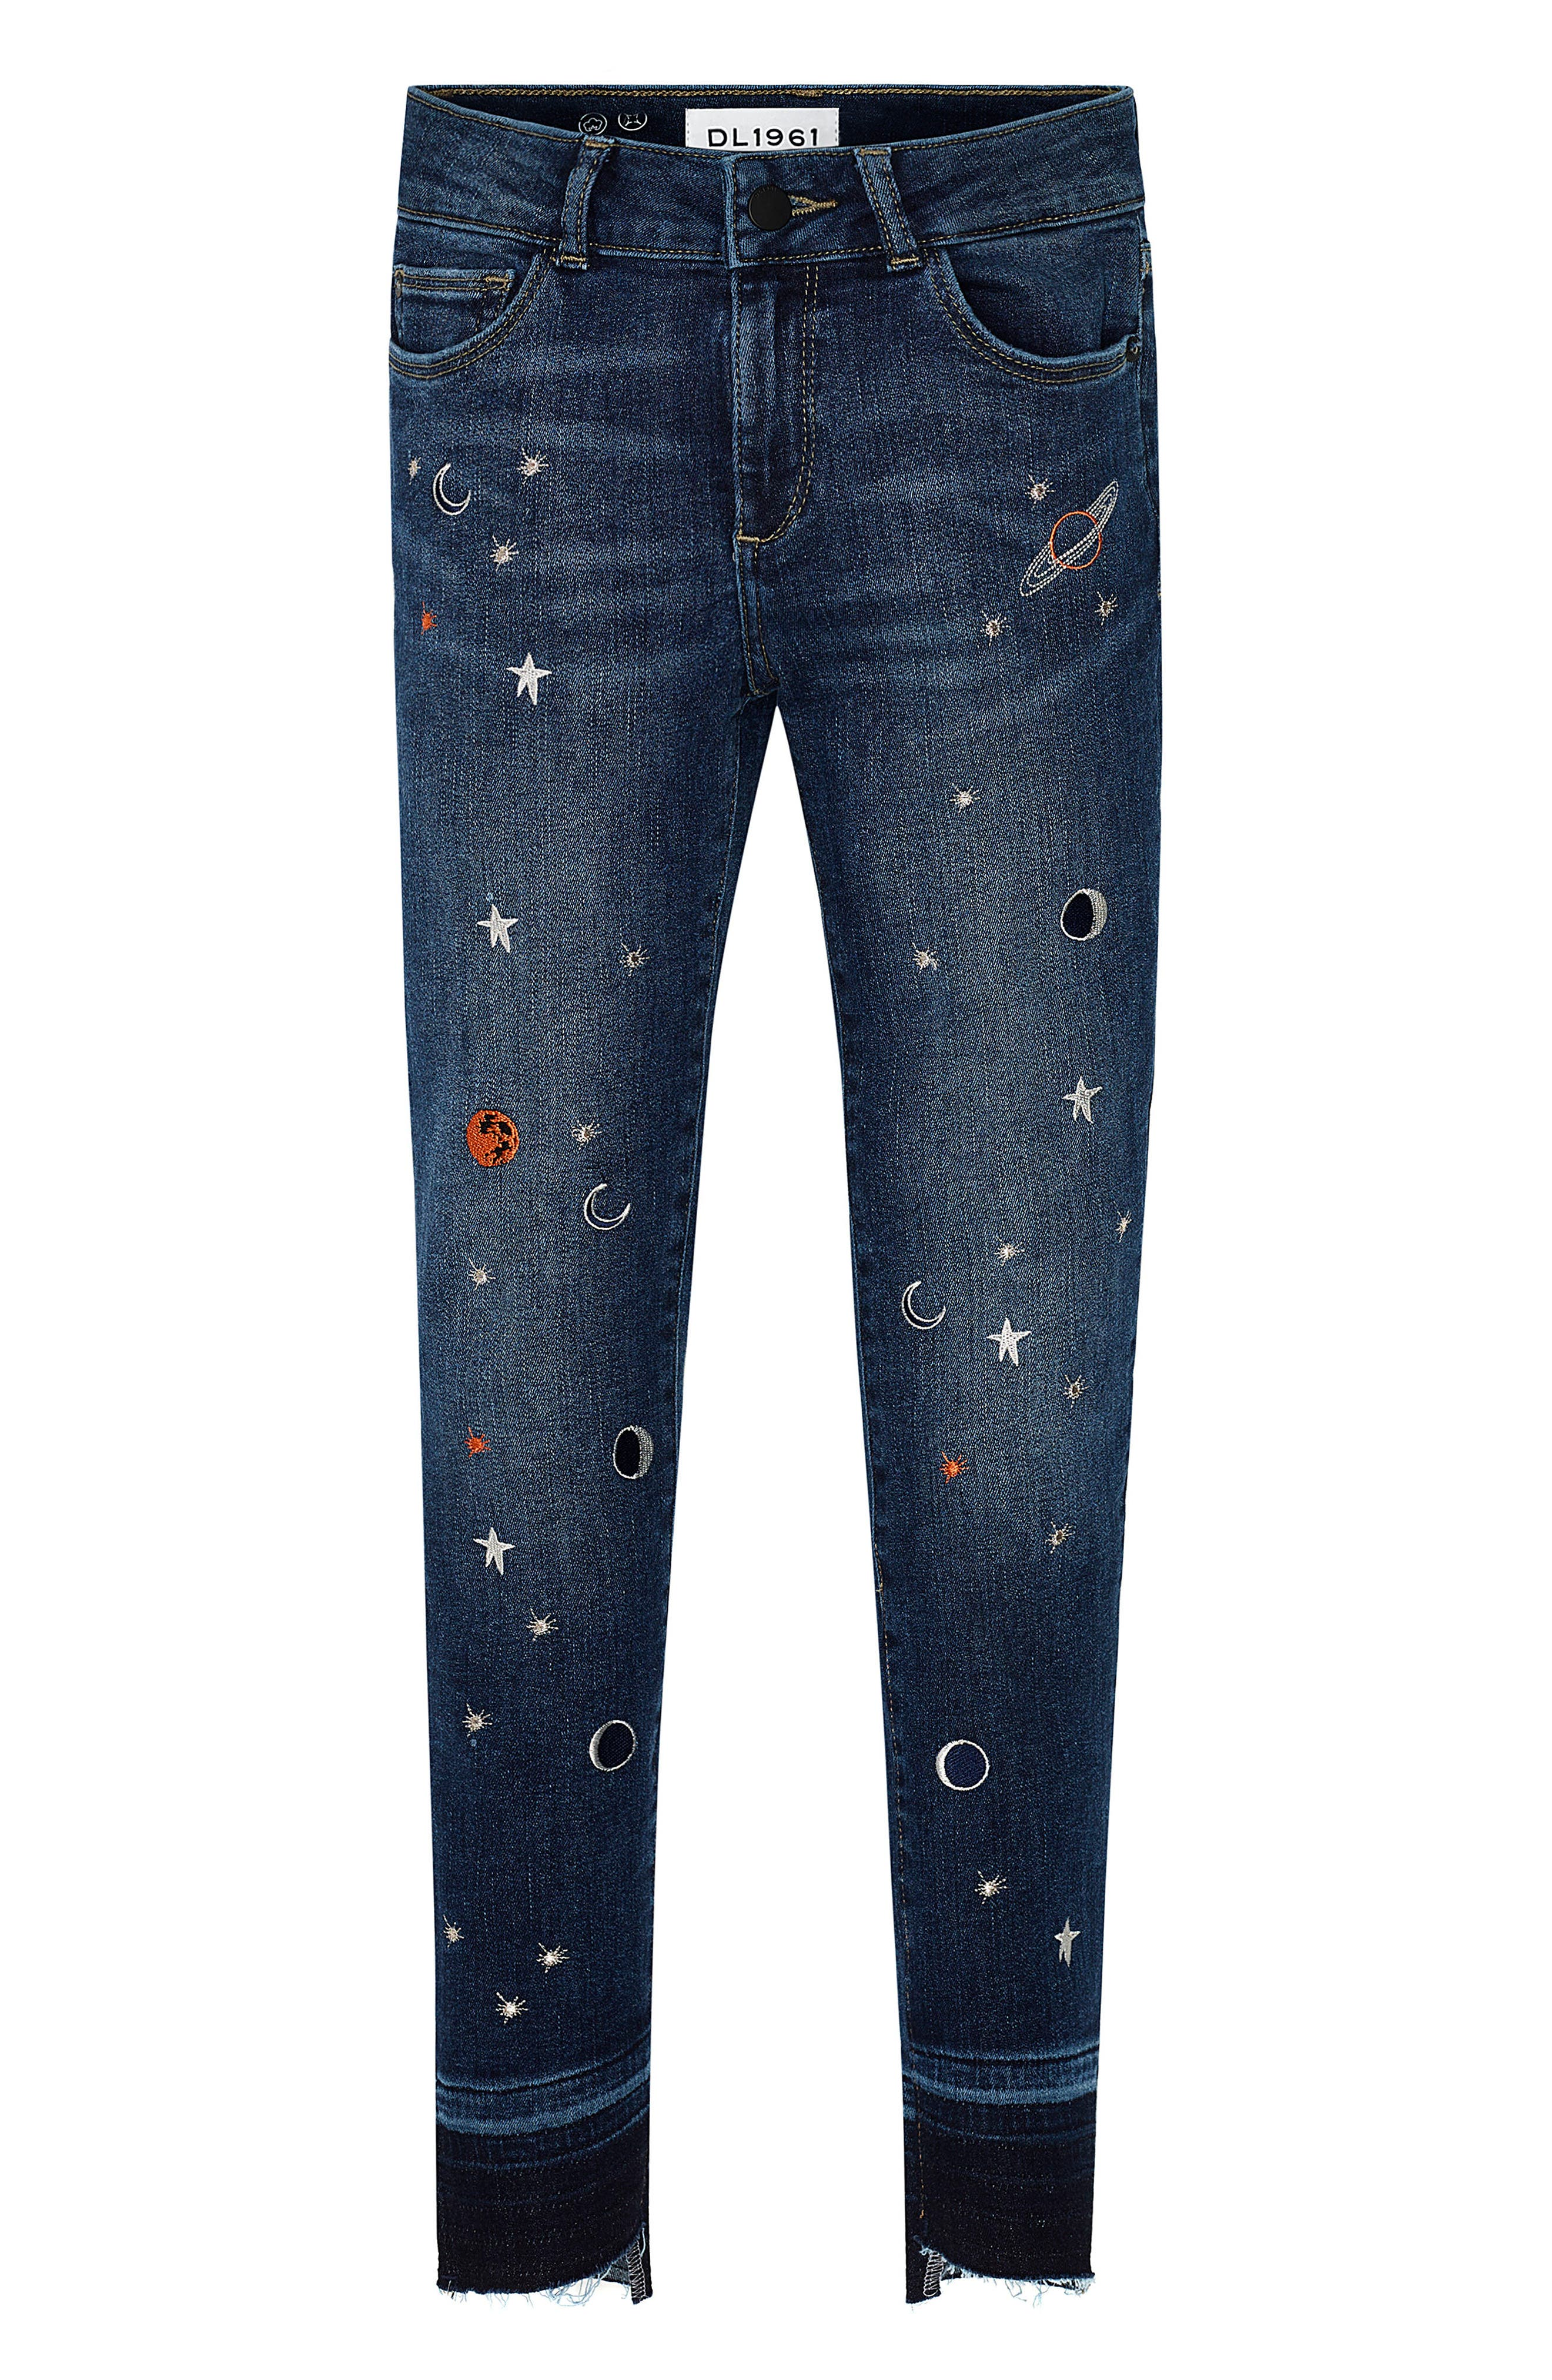 Chloe Galaxy Embroidered Skinny Jeans,                             Main thumbnail 1, color,                             406